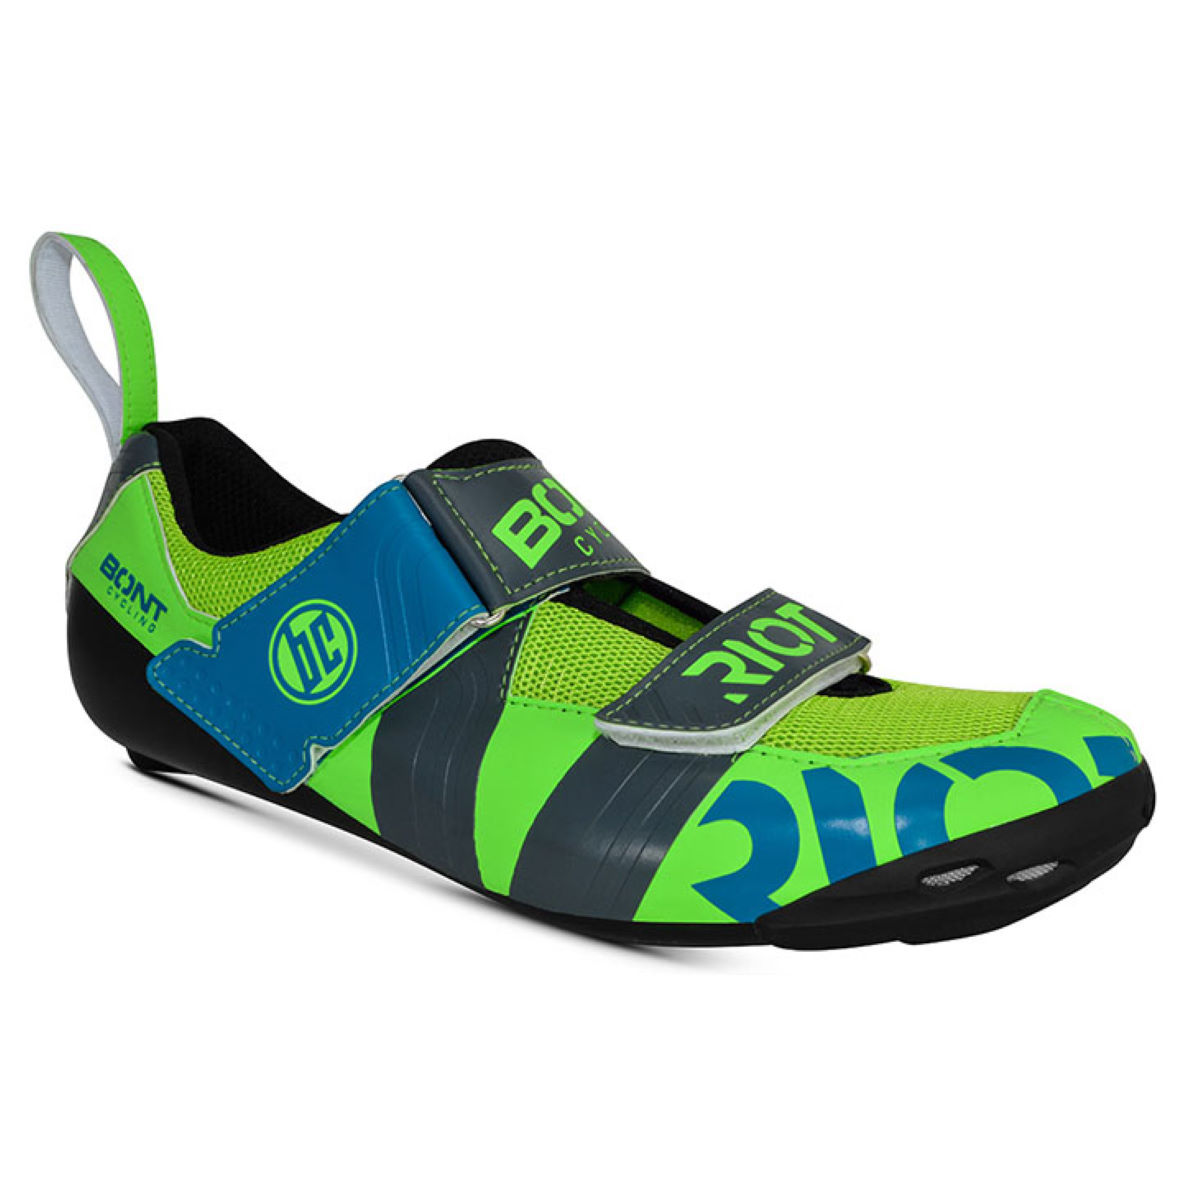 Chaussures de triathlon Bont Riot TR+ - EU 48 Lime/Charcoal